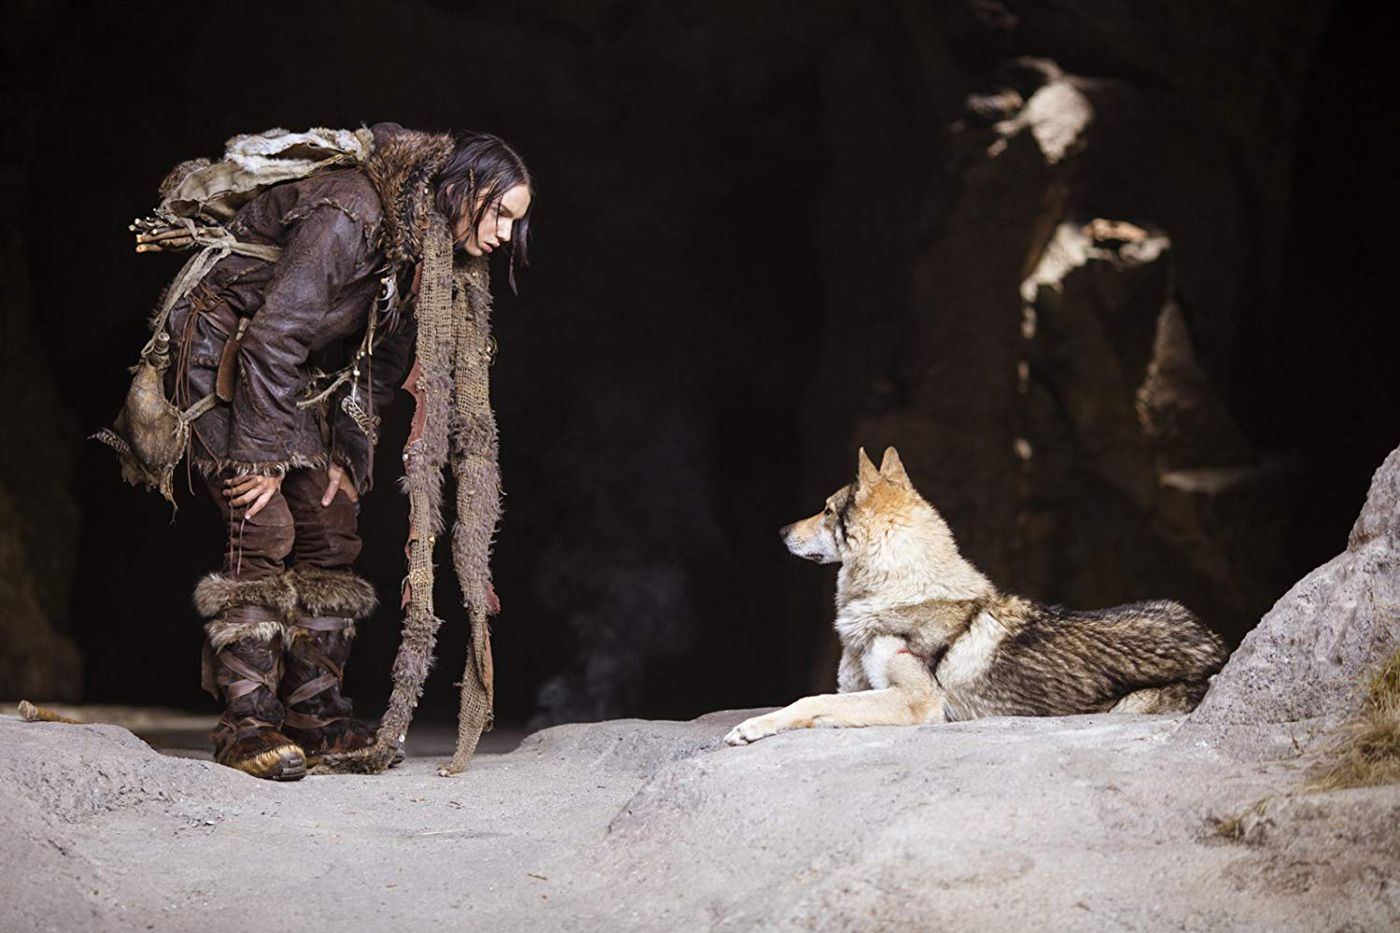 Alpha review: a surprising movie about a prehistoric boy and